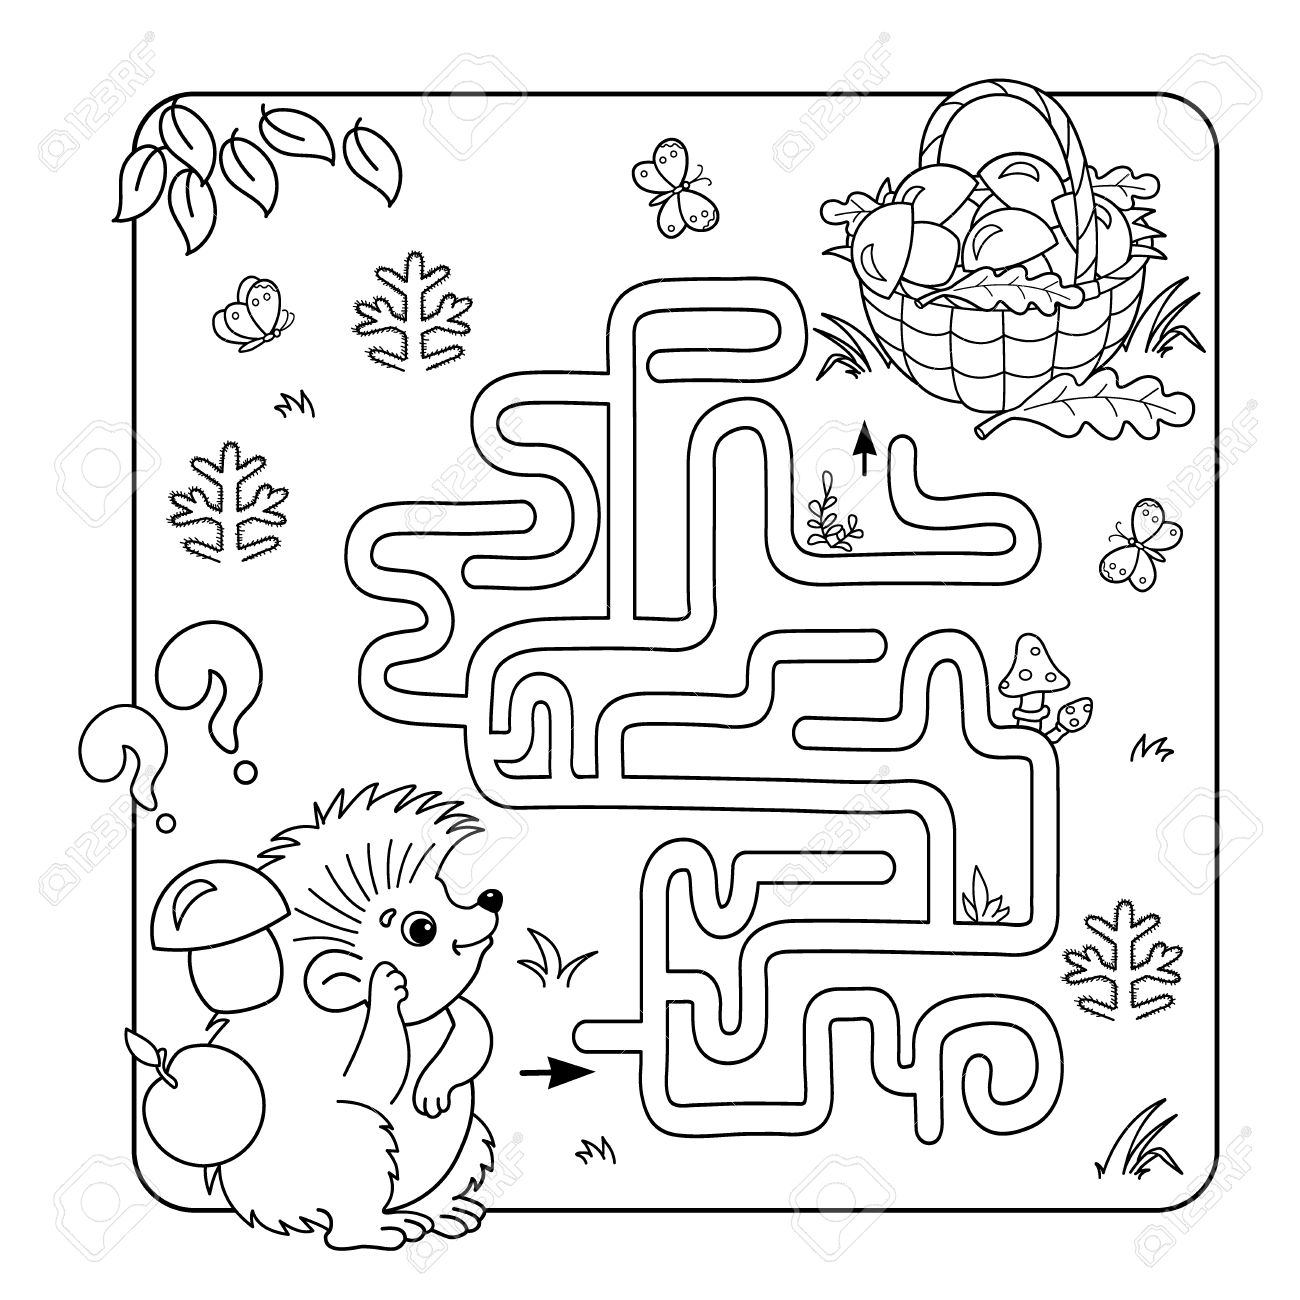 Cartoon Vector Illustration Of Education Maze Or Labyrinth Game ...